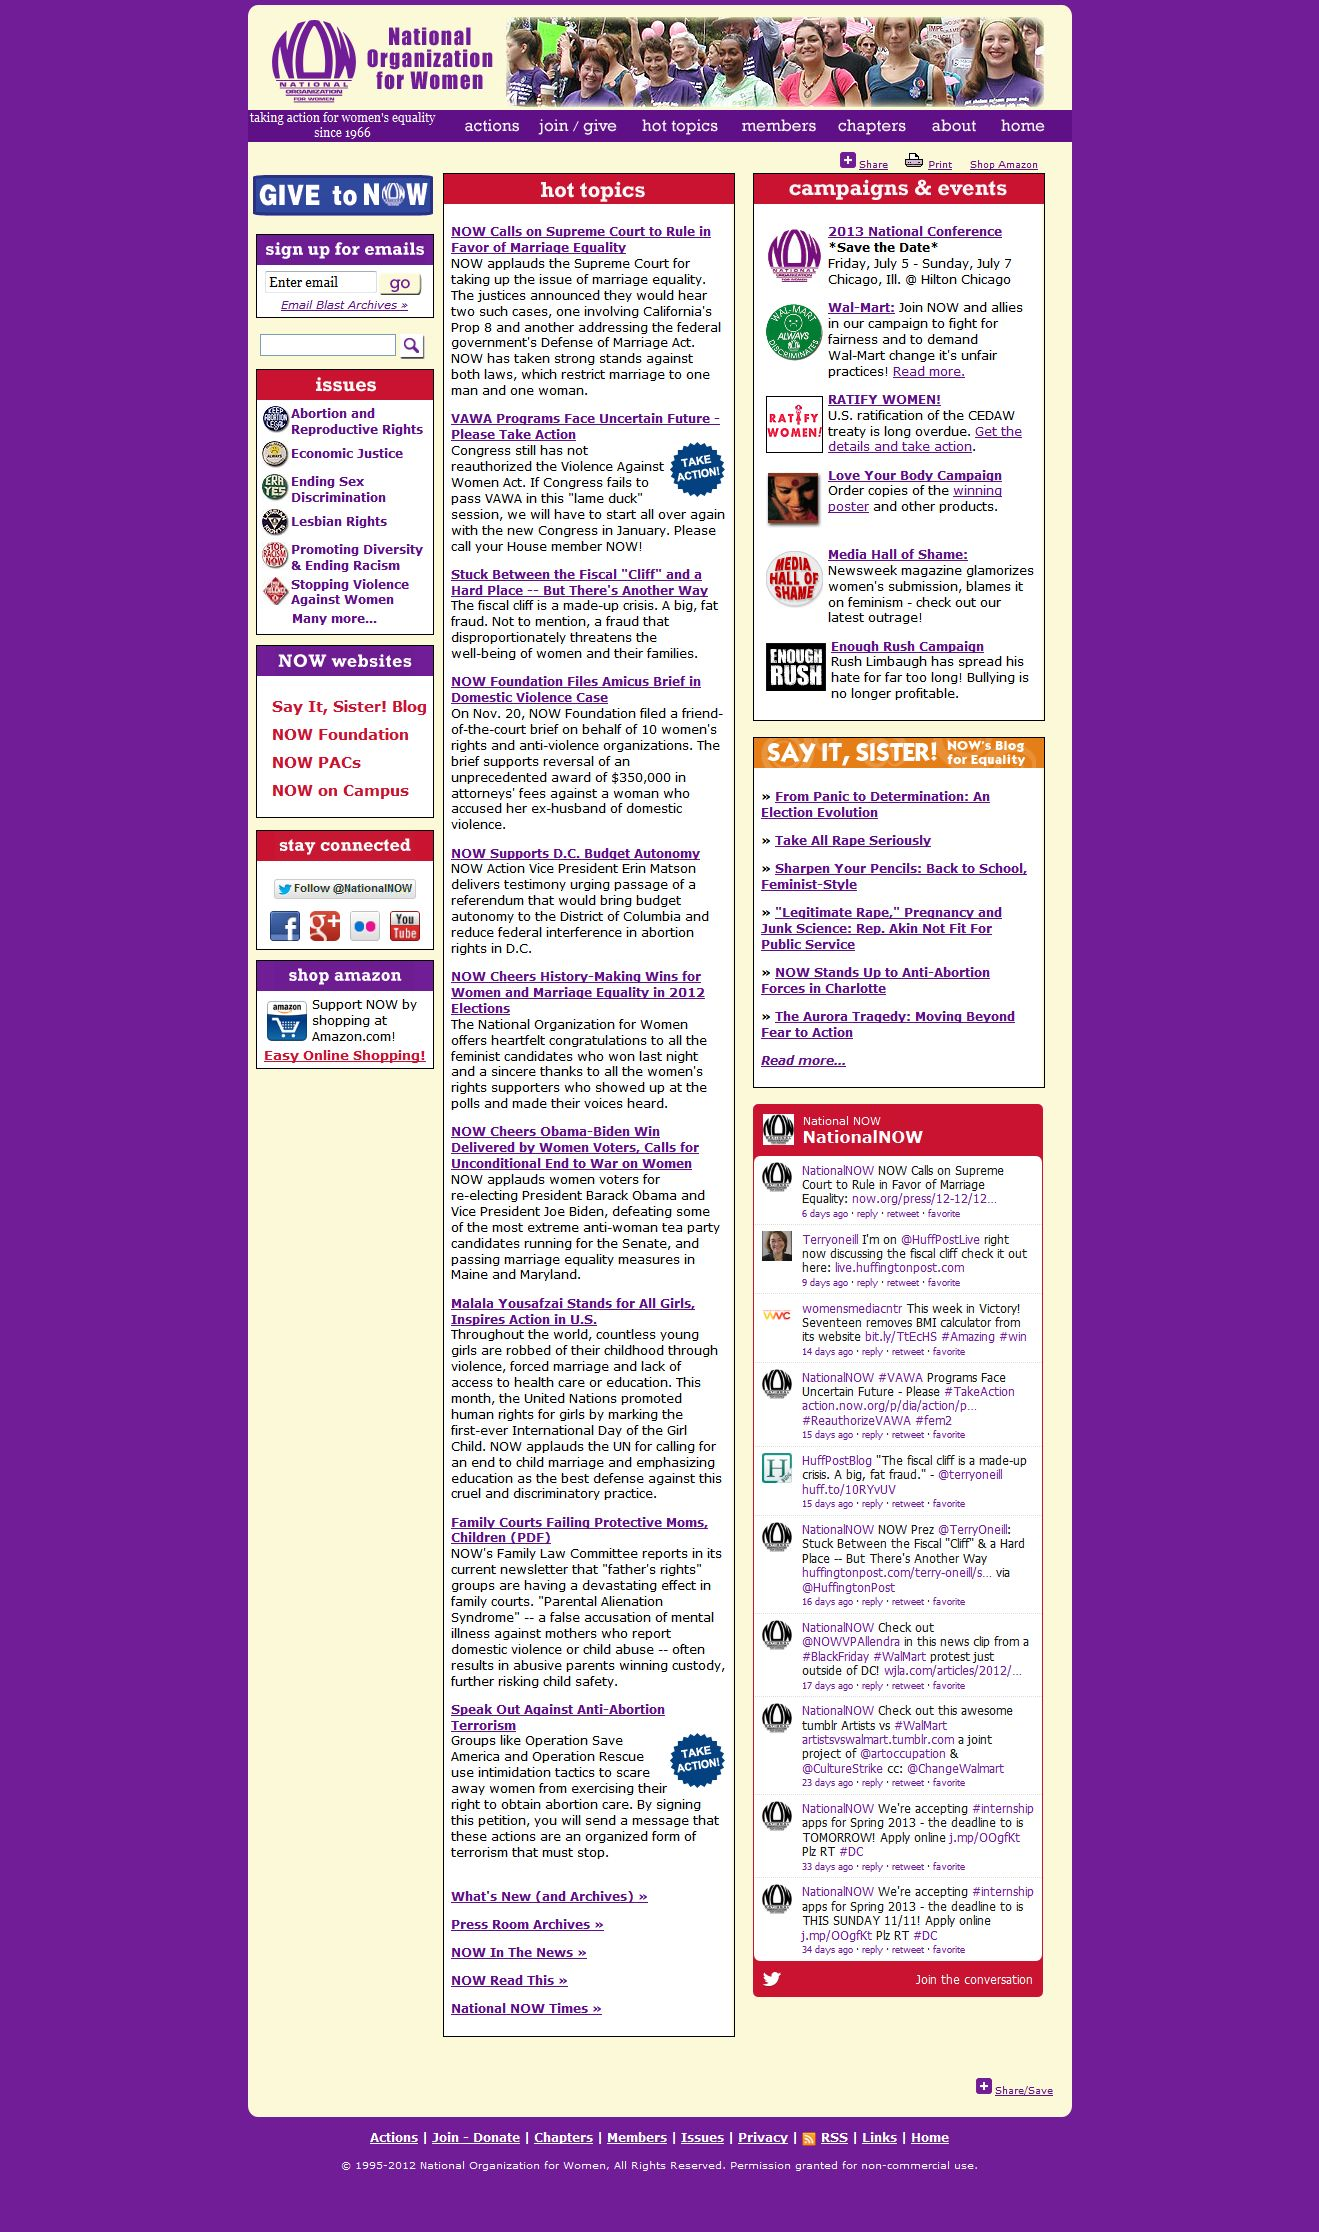 FireShot Screen Capture #042 - 'National Organization for Women (NOW)' - www_now_org